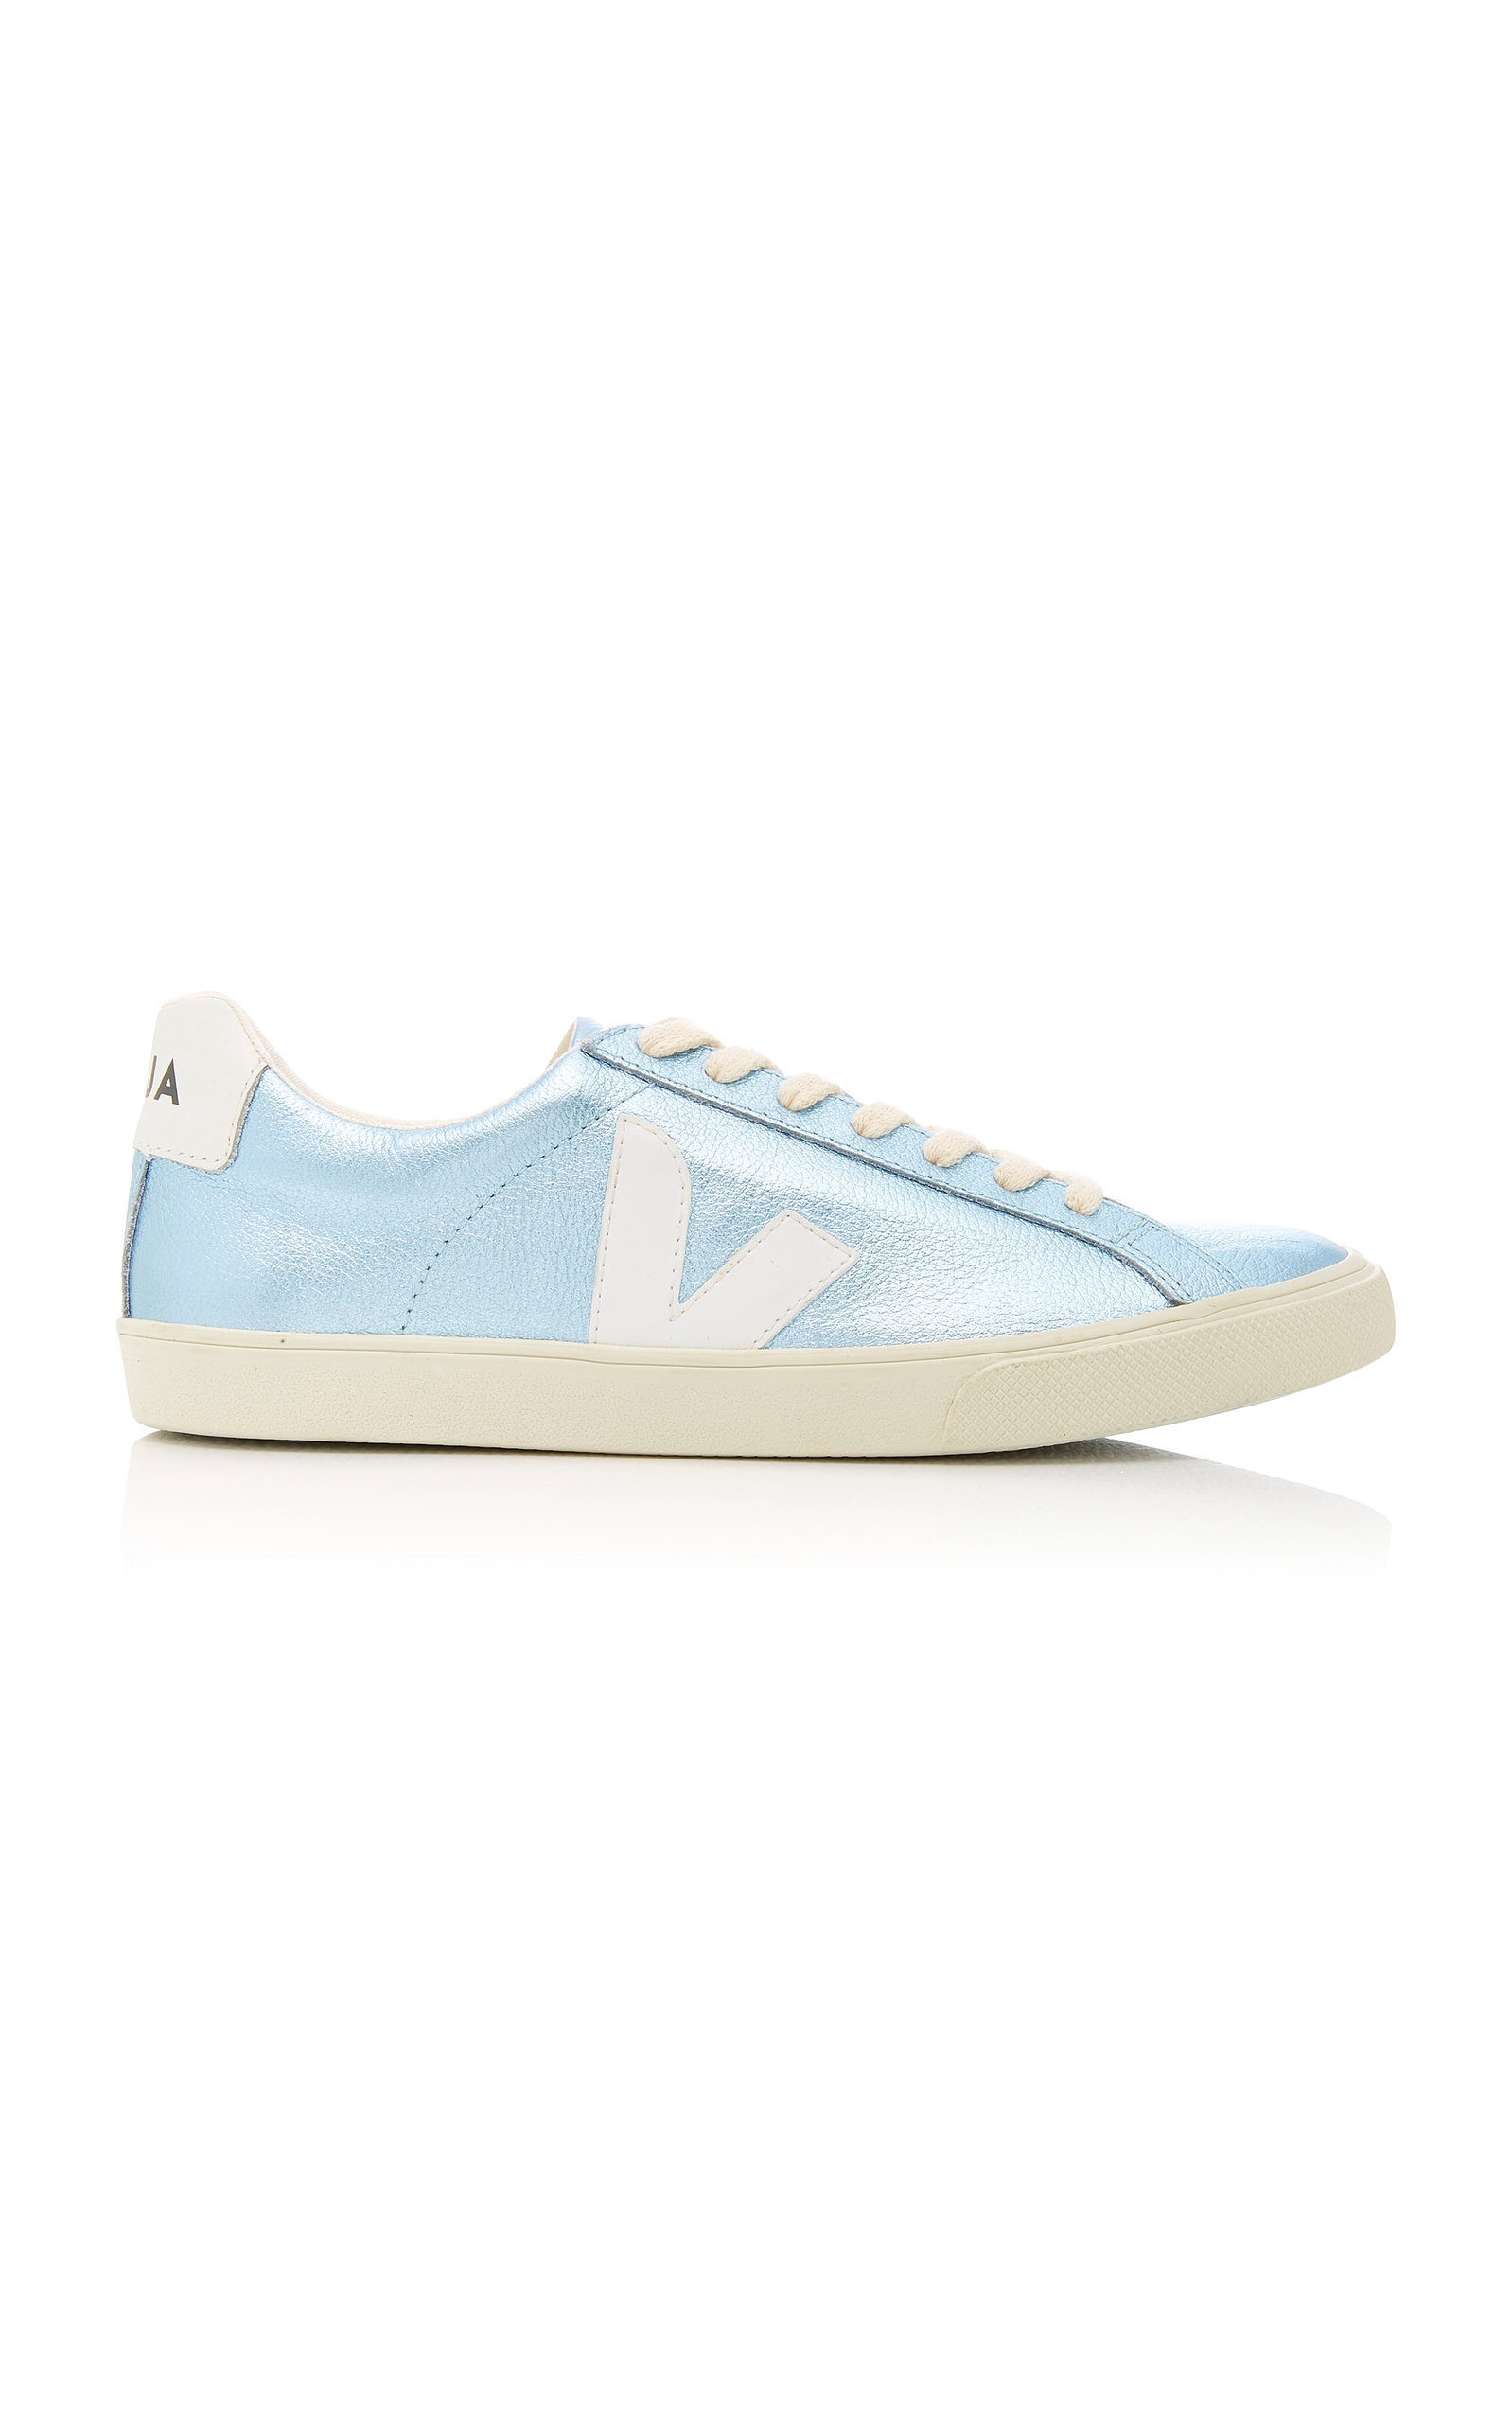 VEJA ESPLAR METALLIC LEATHER SNEAKERS